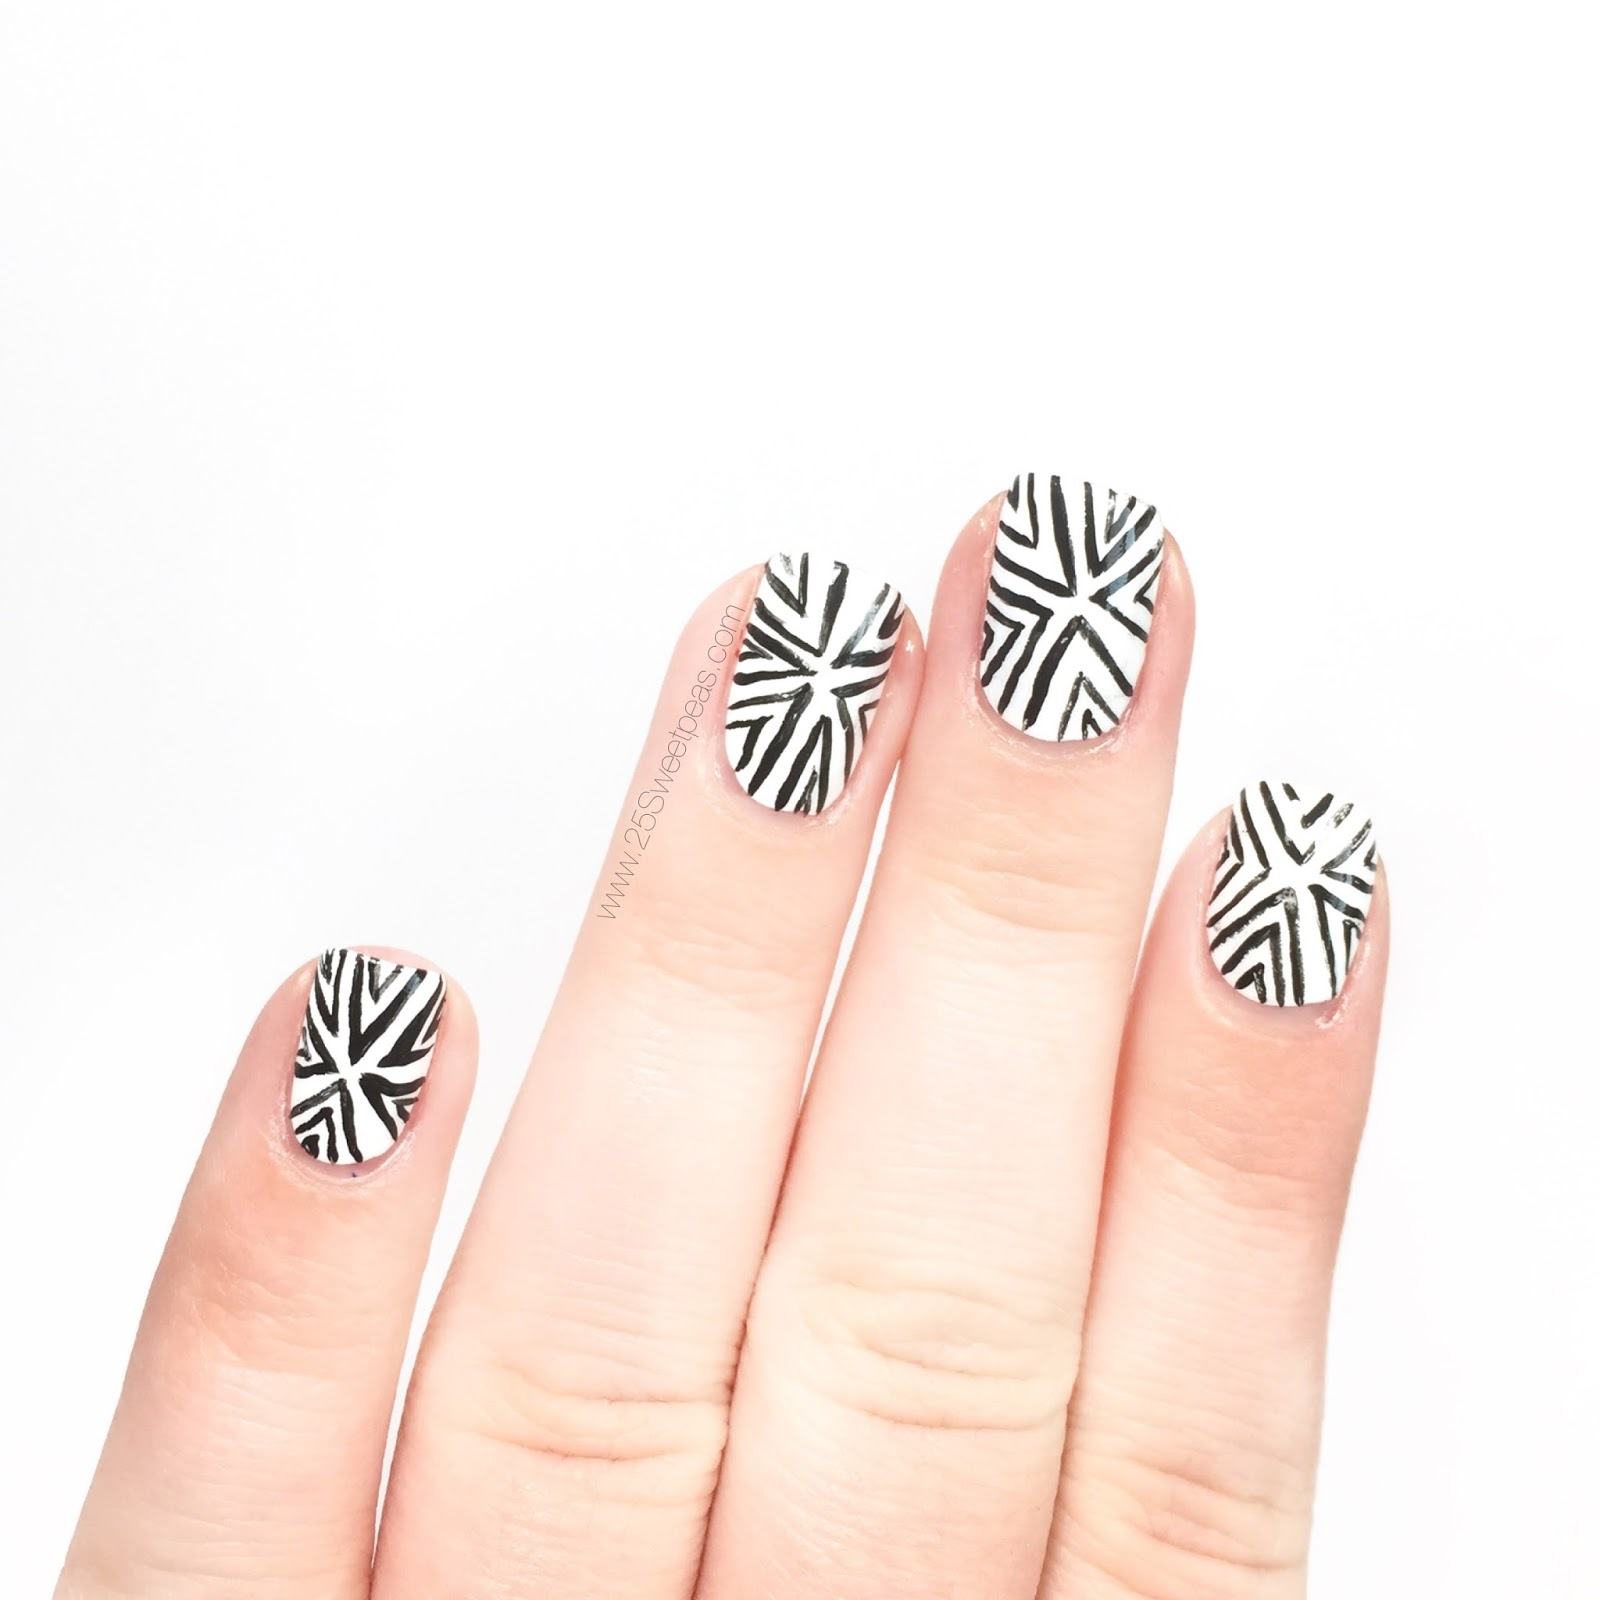 Black and White Nails